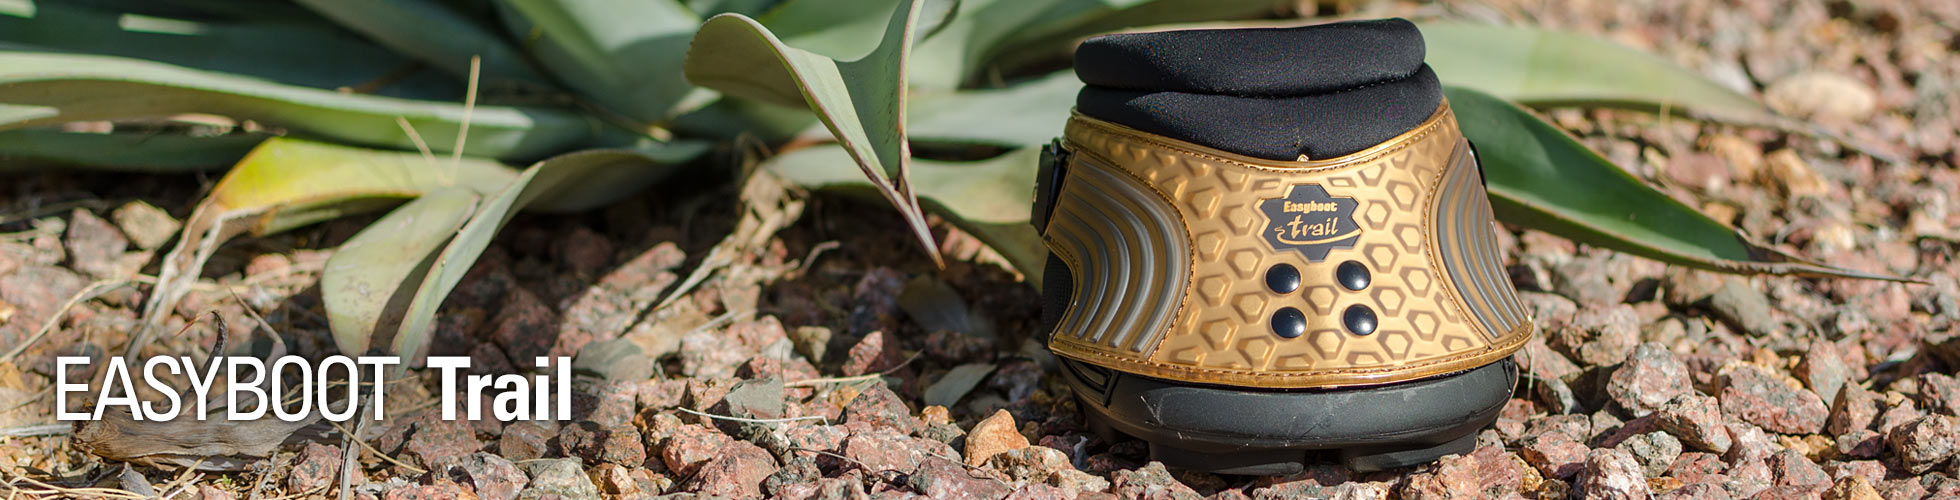 Easy Boot New Trail / Bare